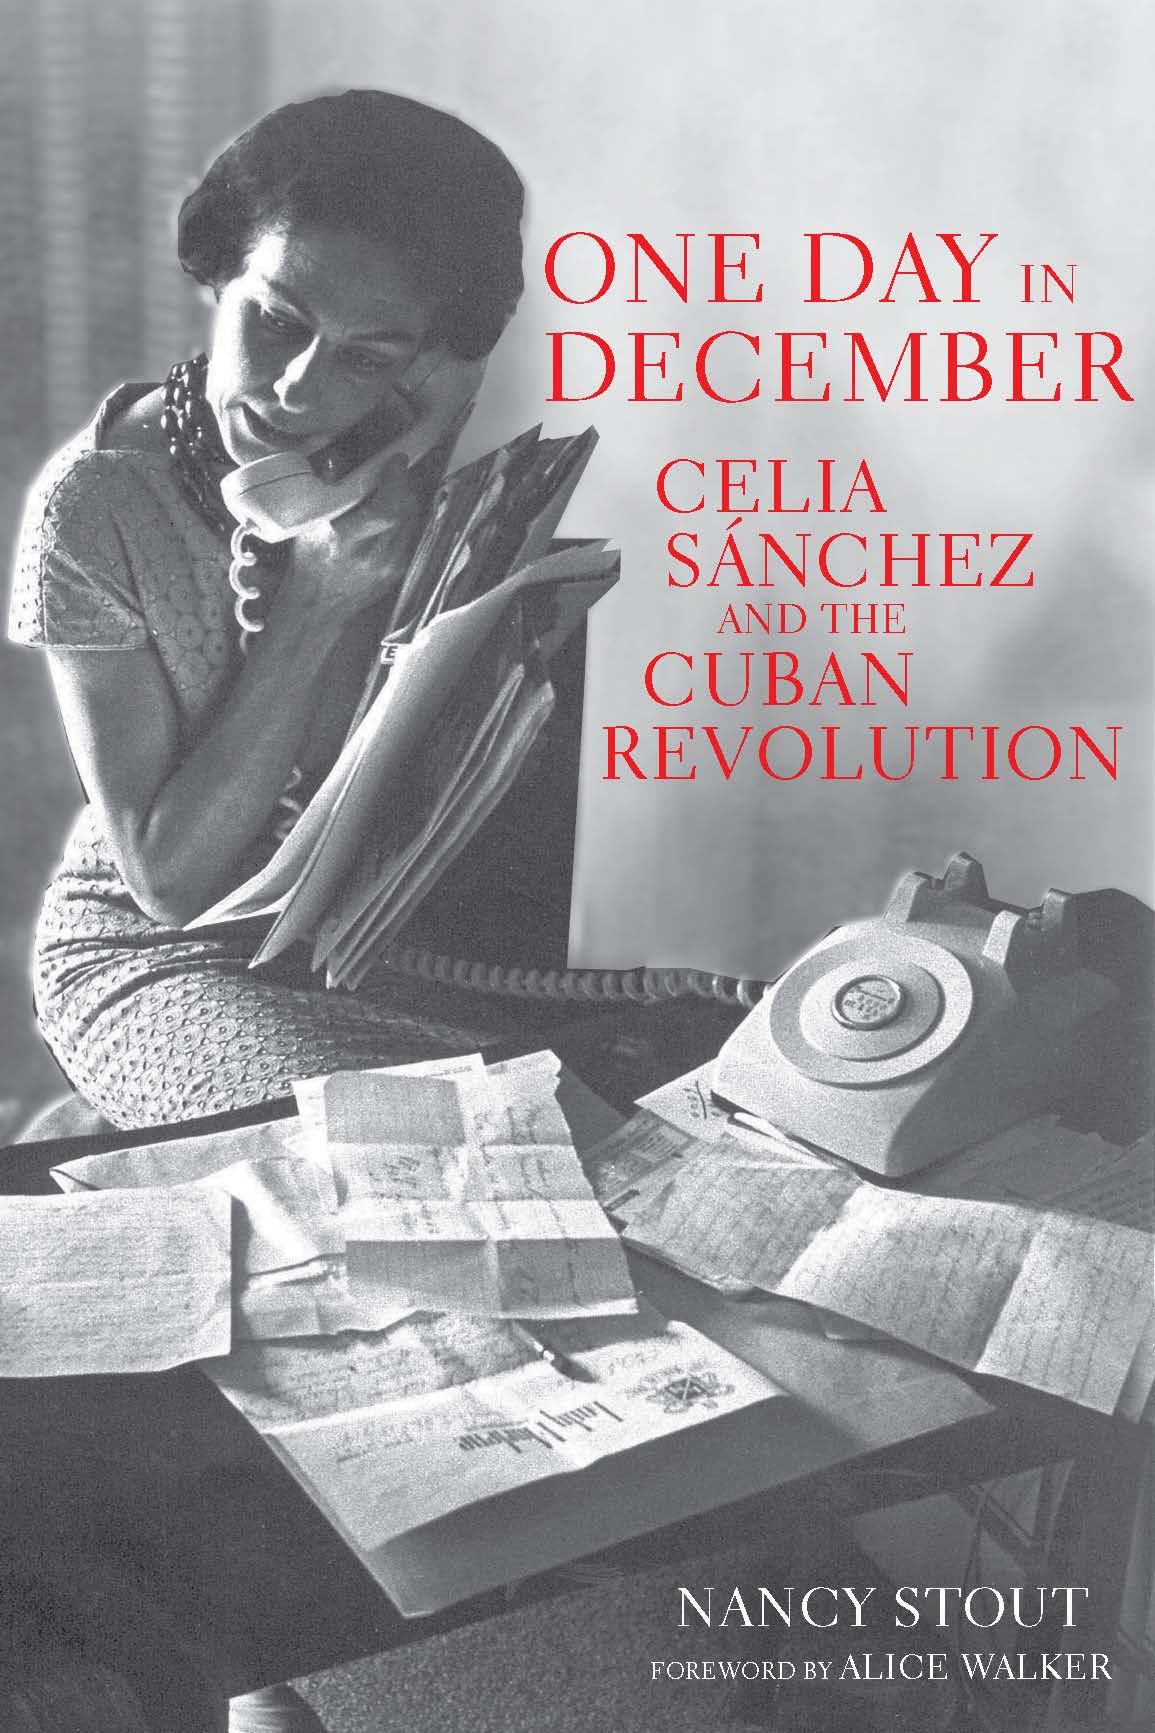 One Day in December: Celia Sánchez and the Cuban Revolution